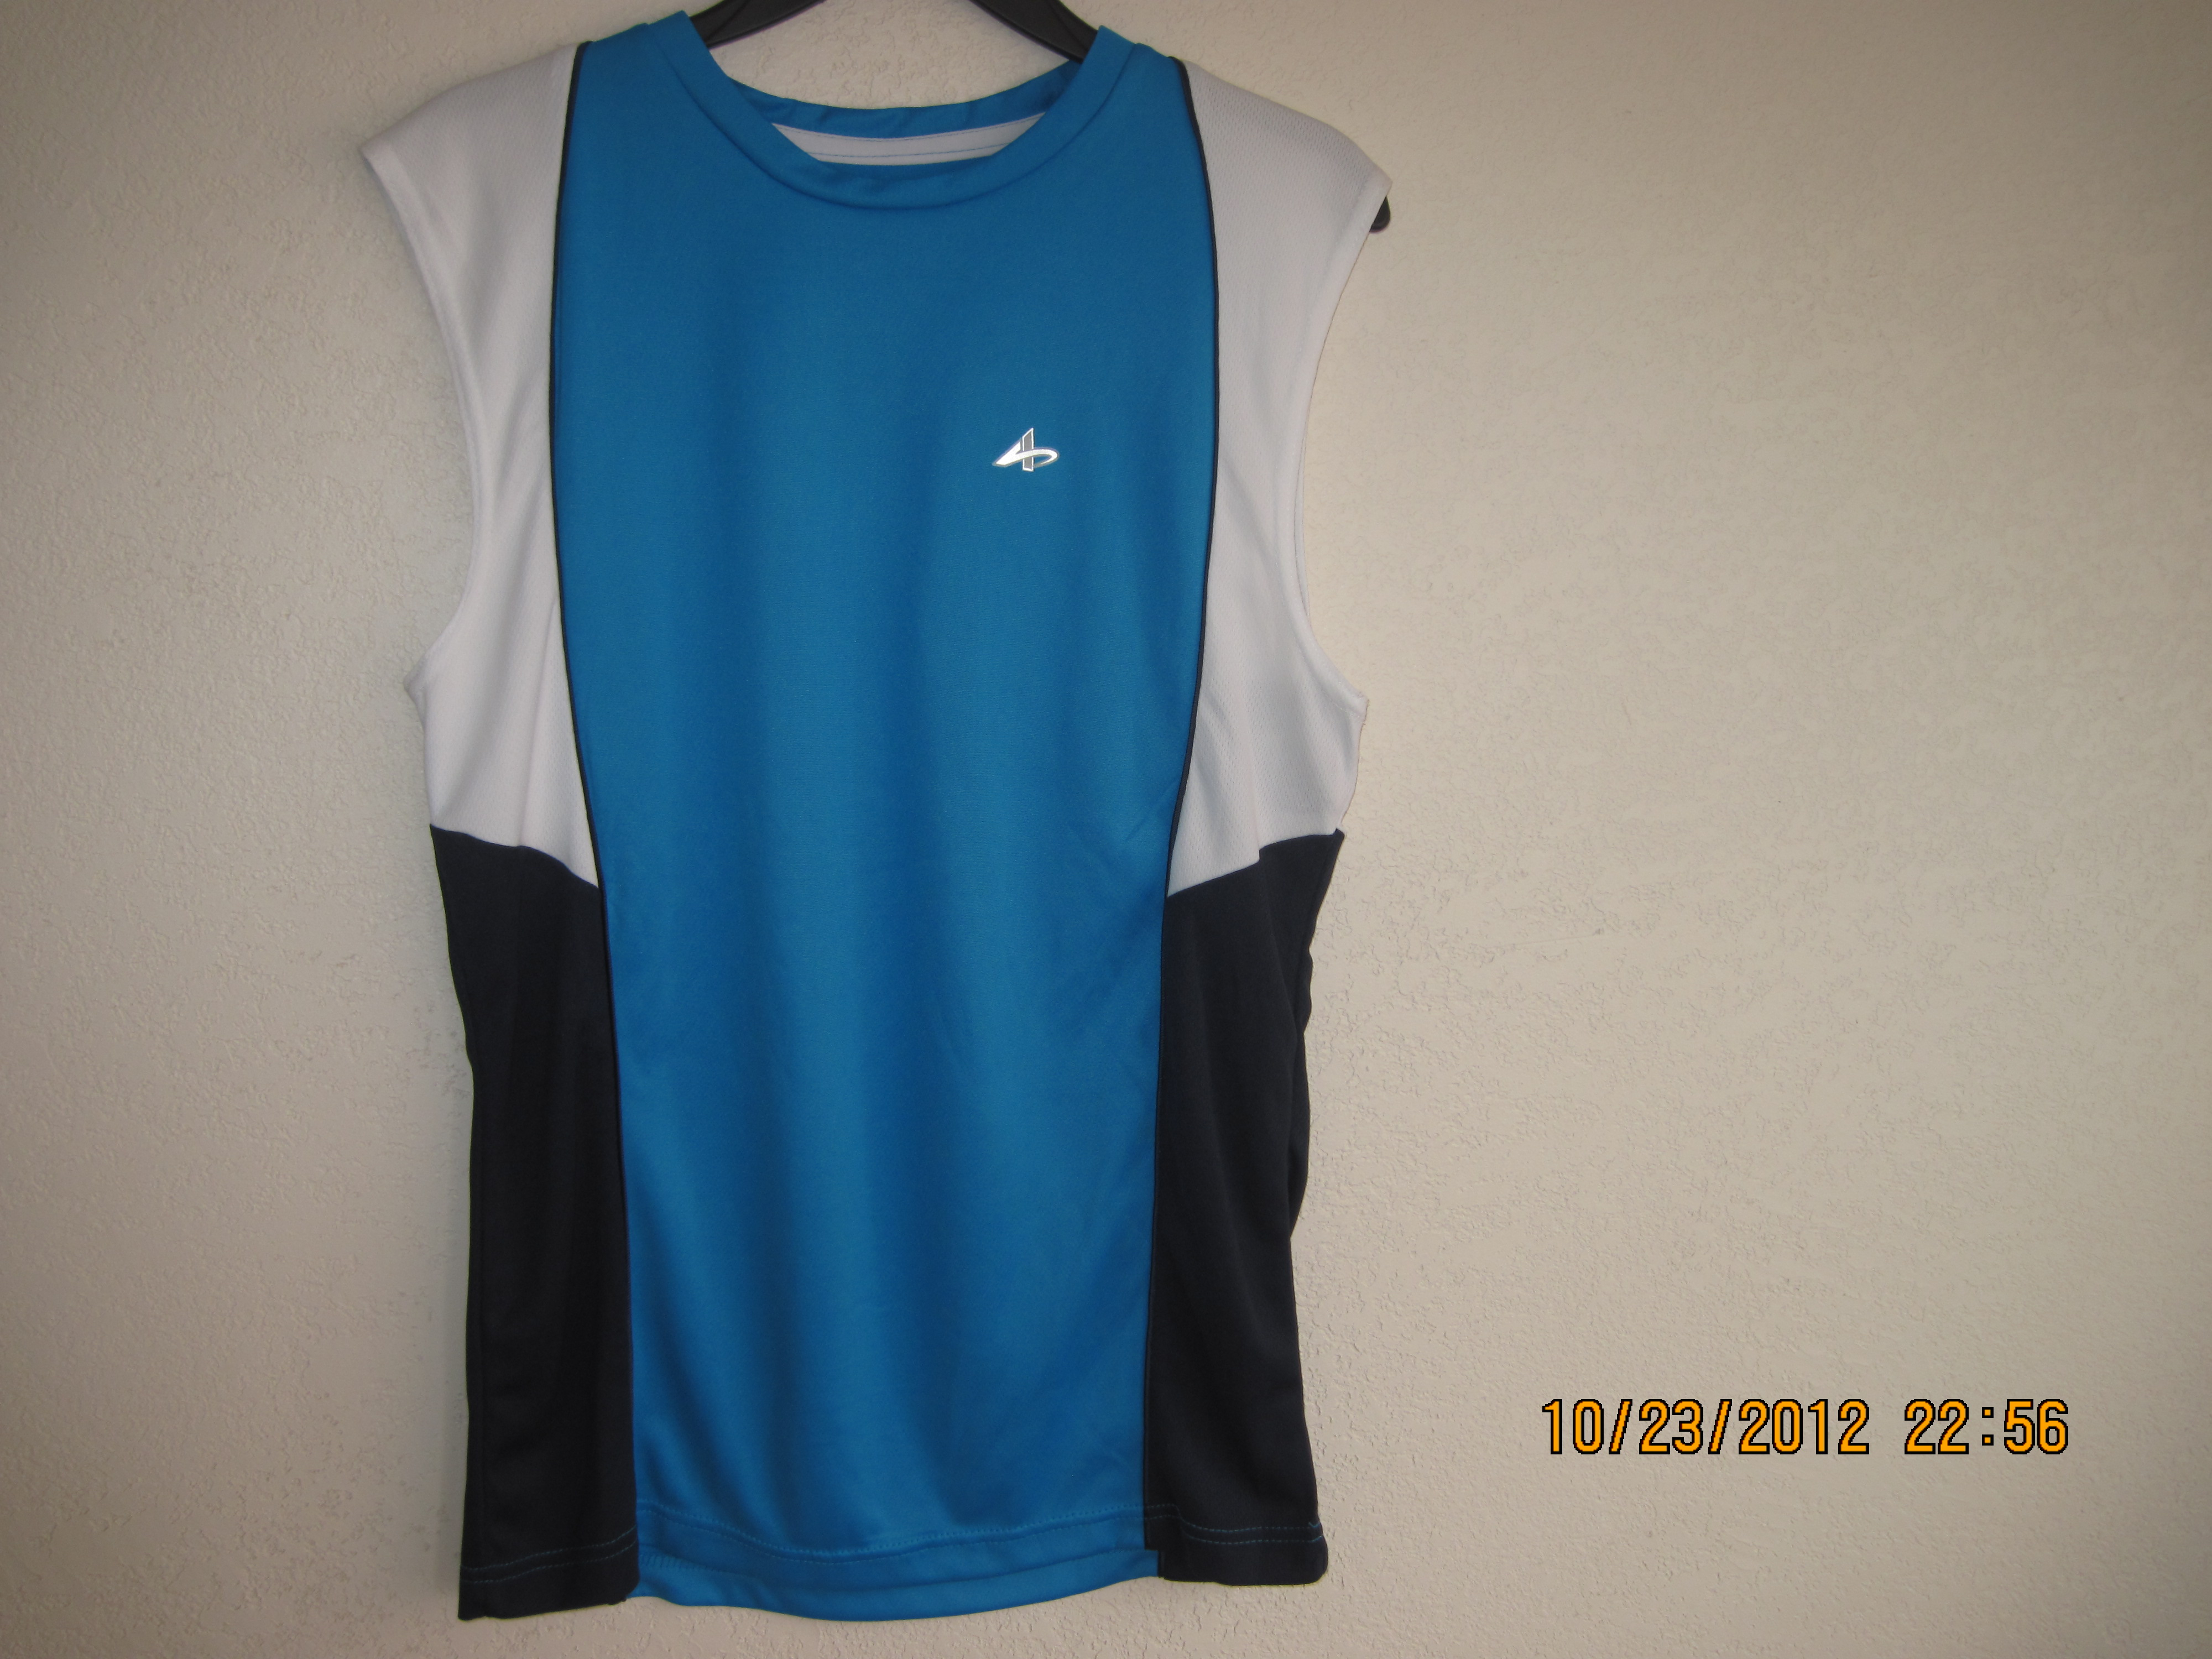 Athletech Sz M Blue with white & Navy Blue down the sides